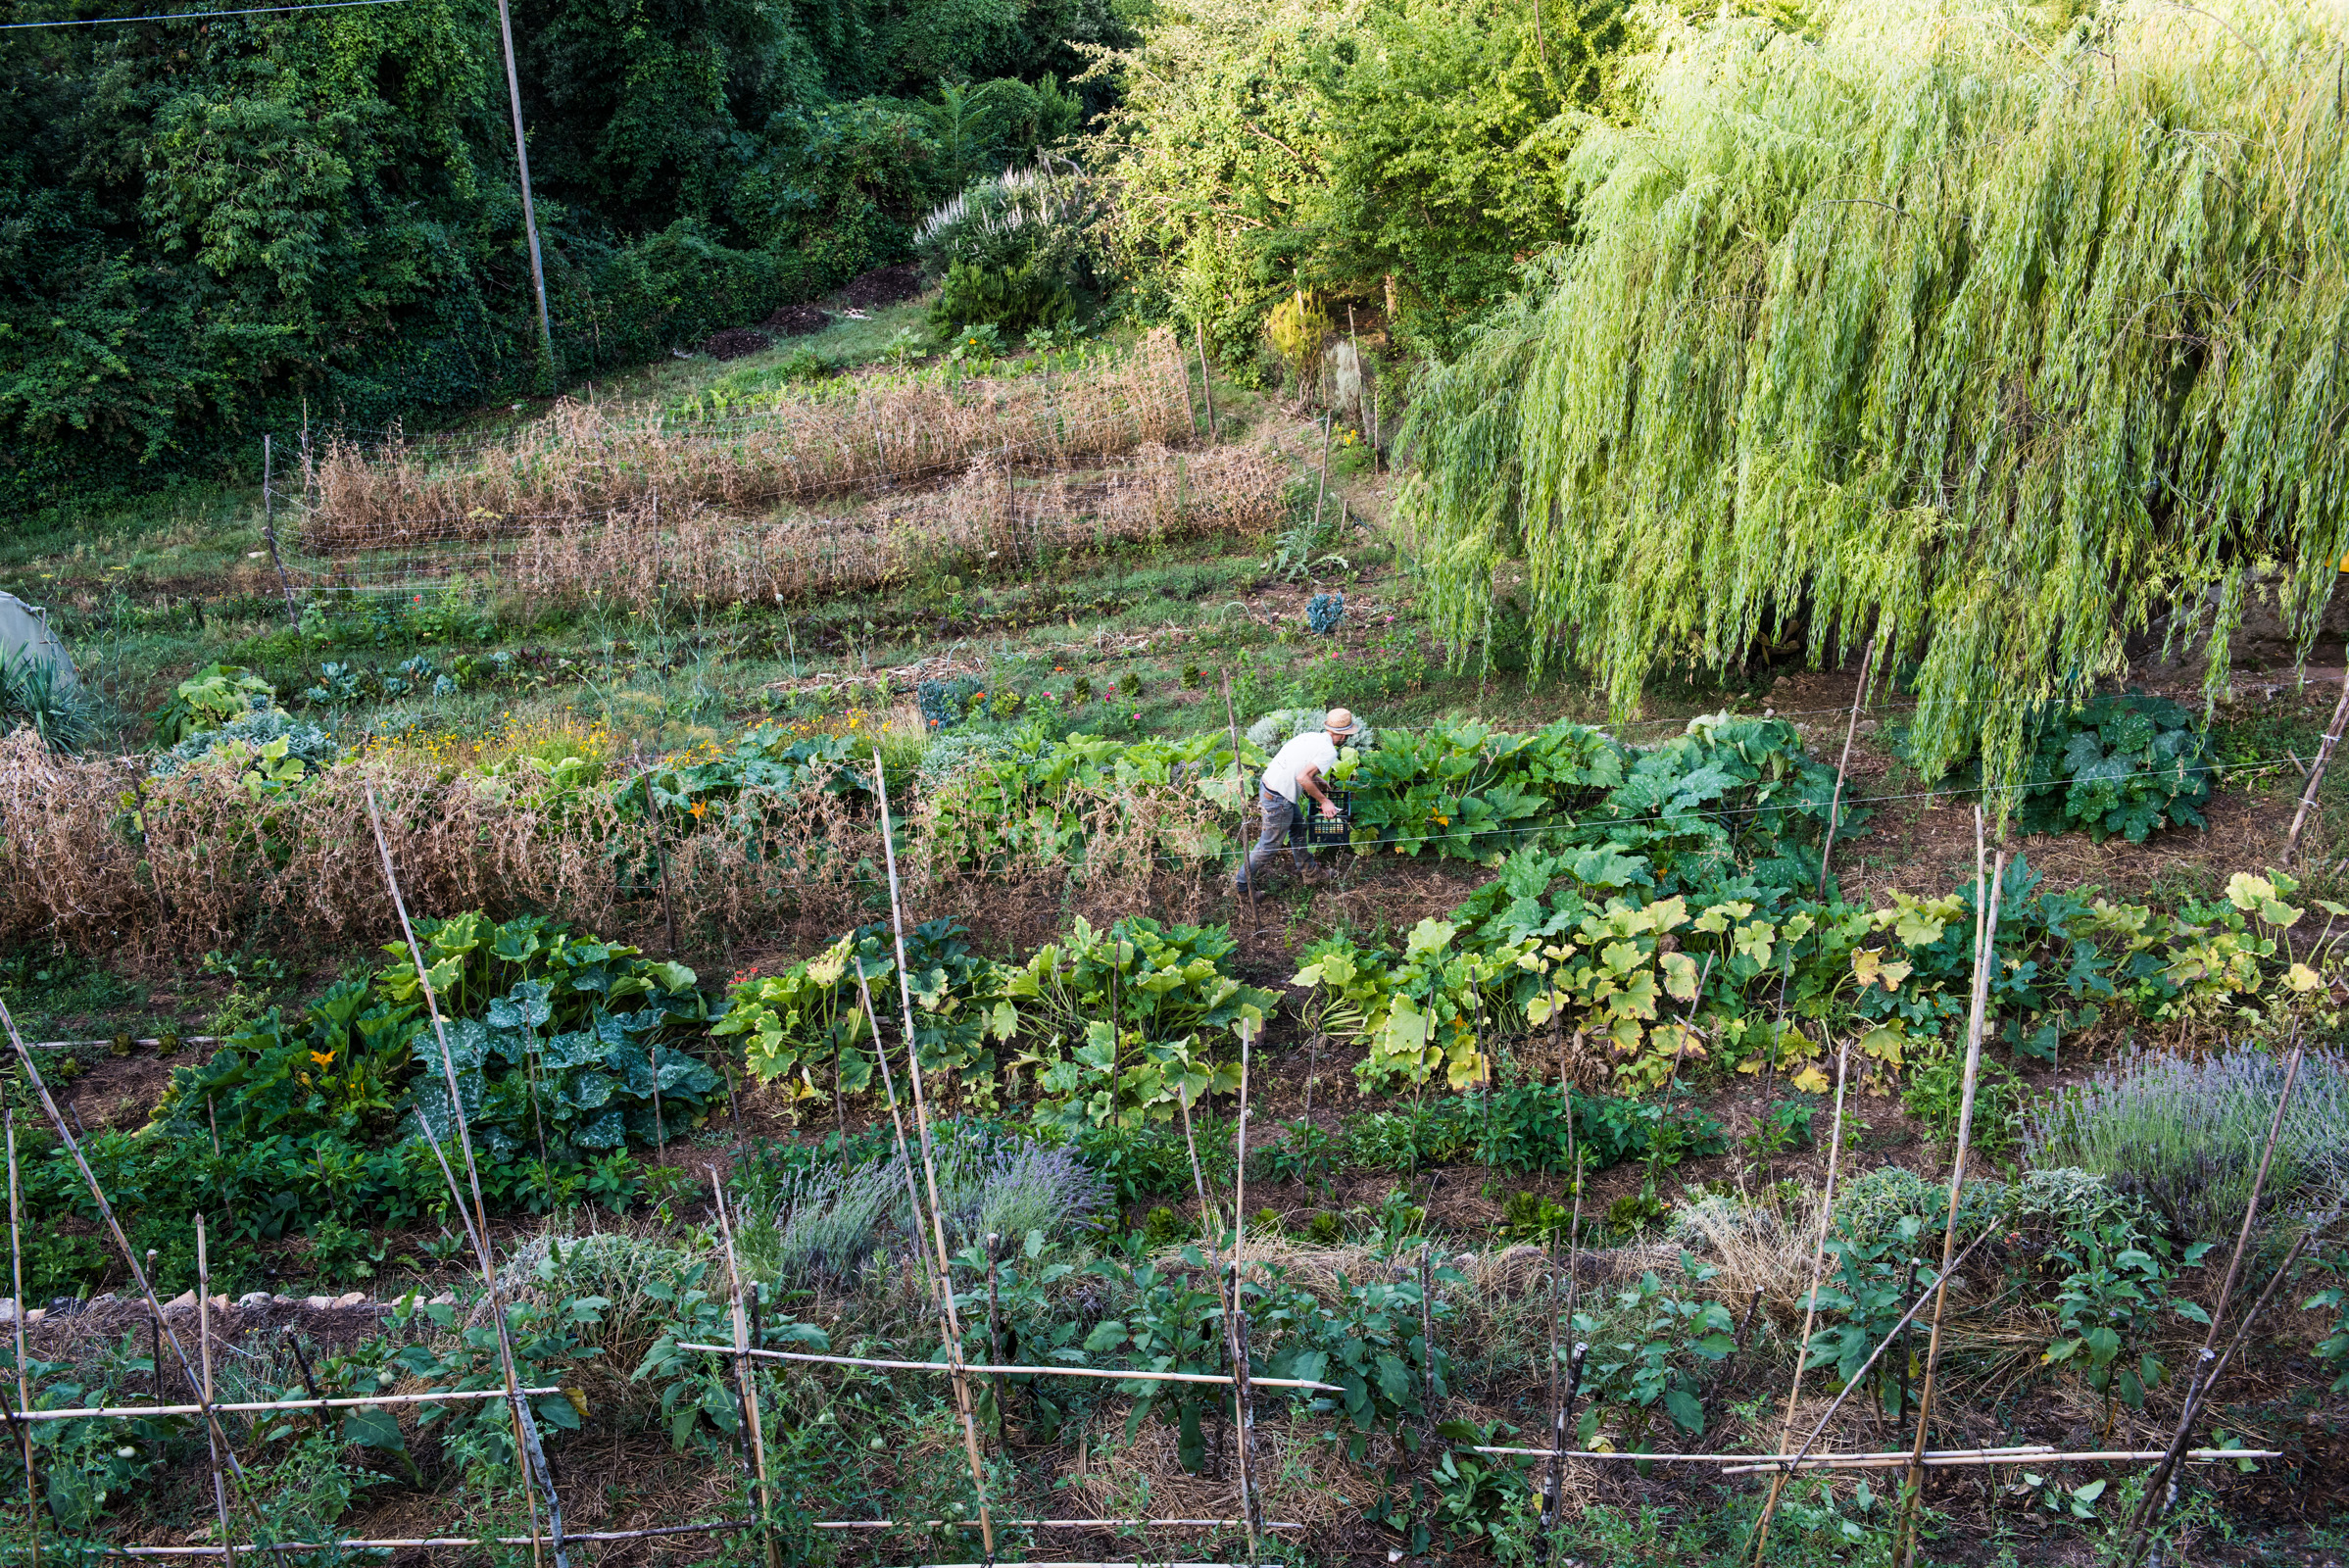 Villa vegetable garden